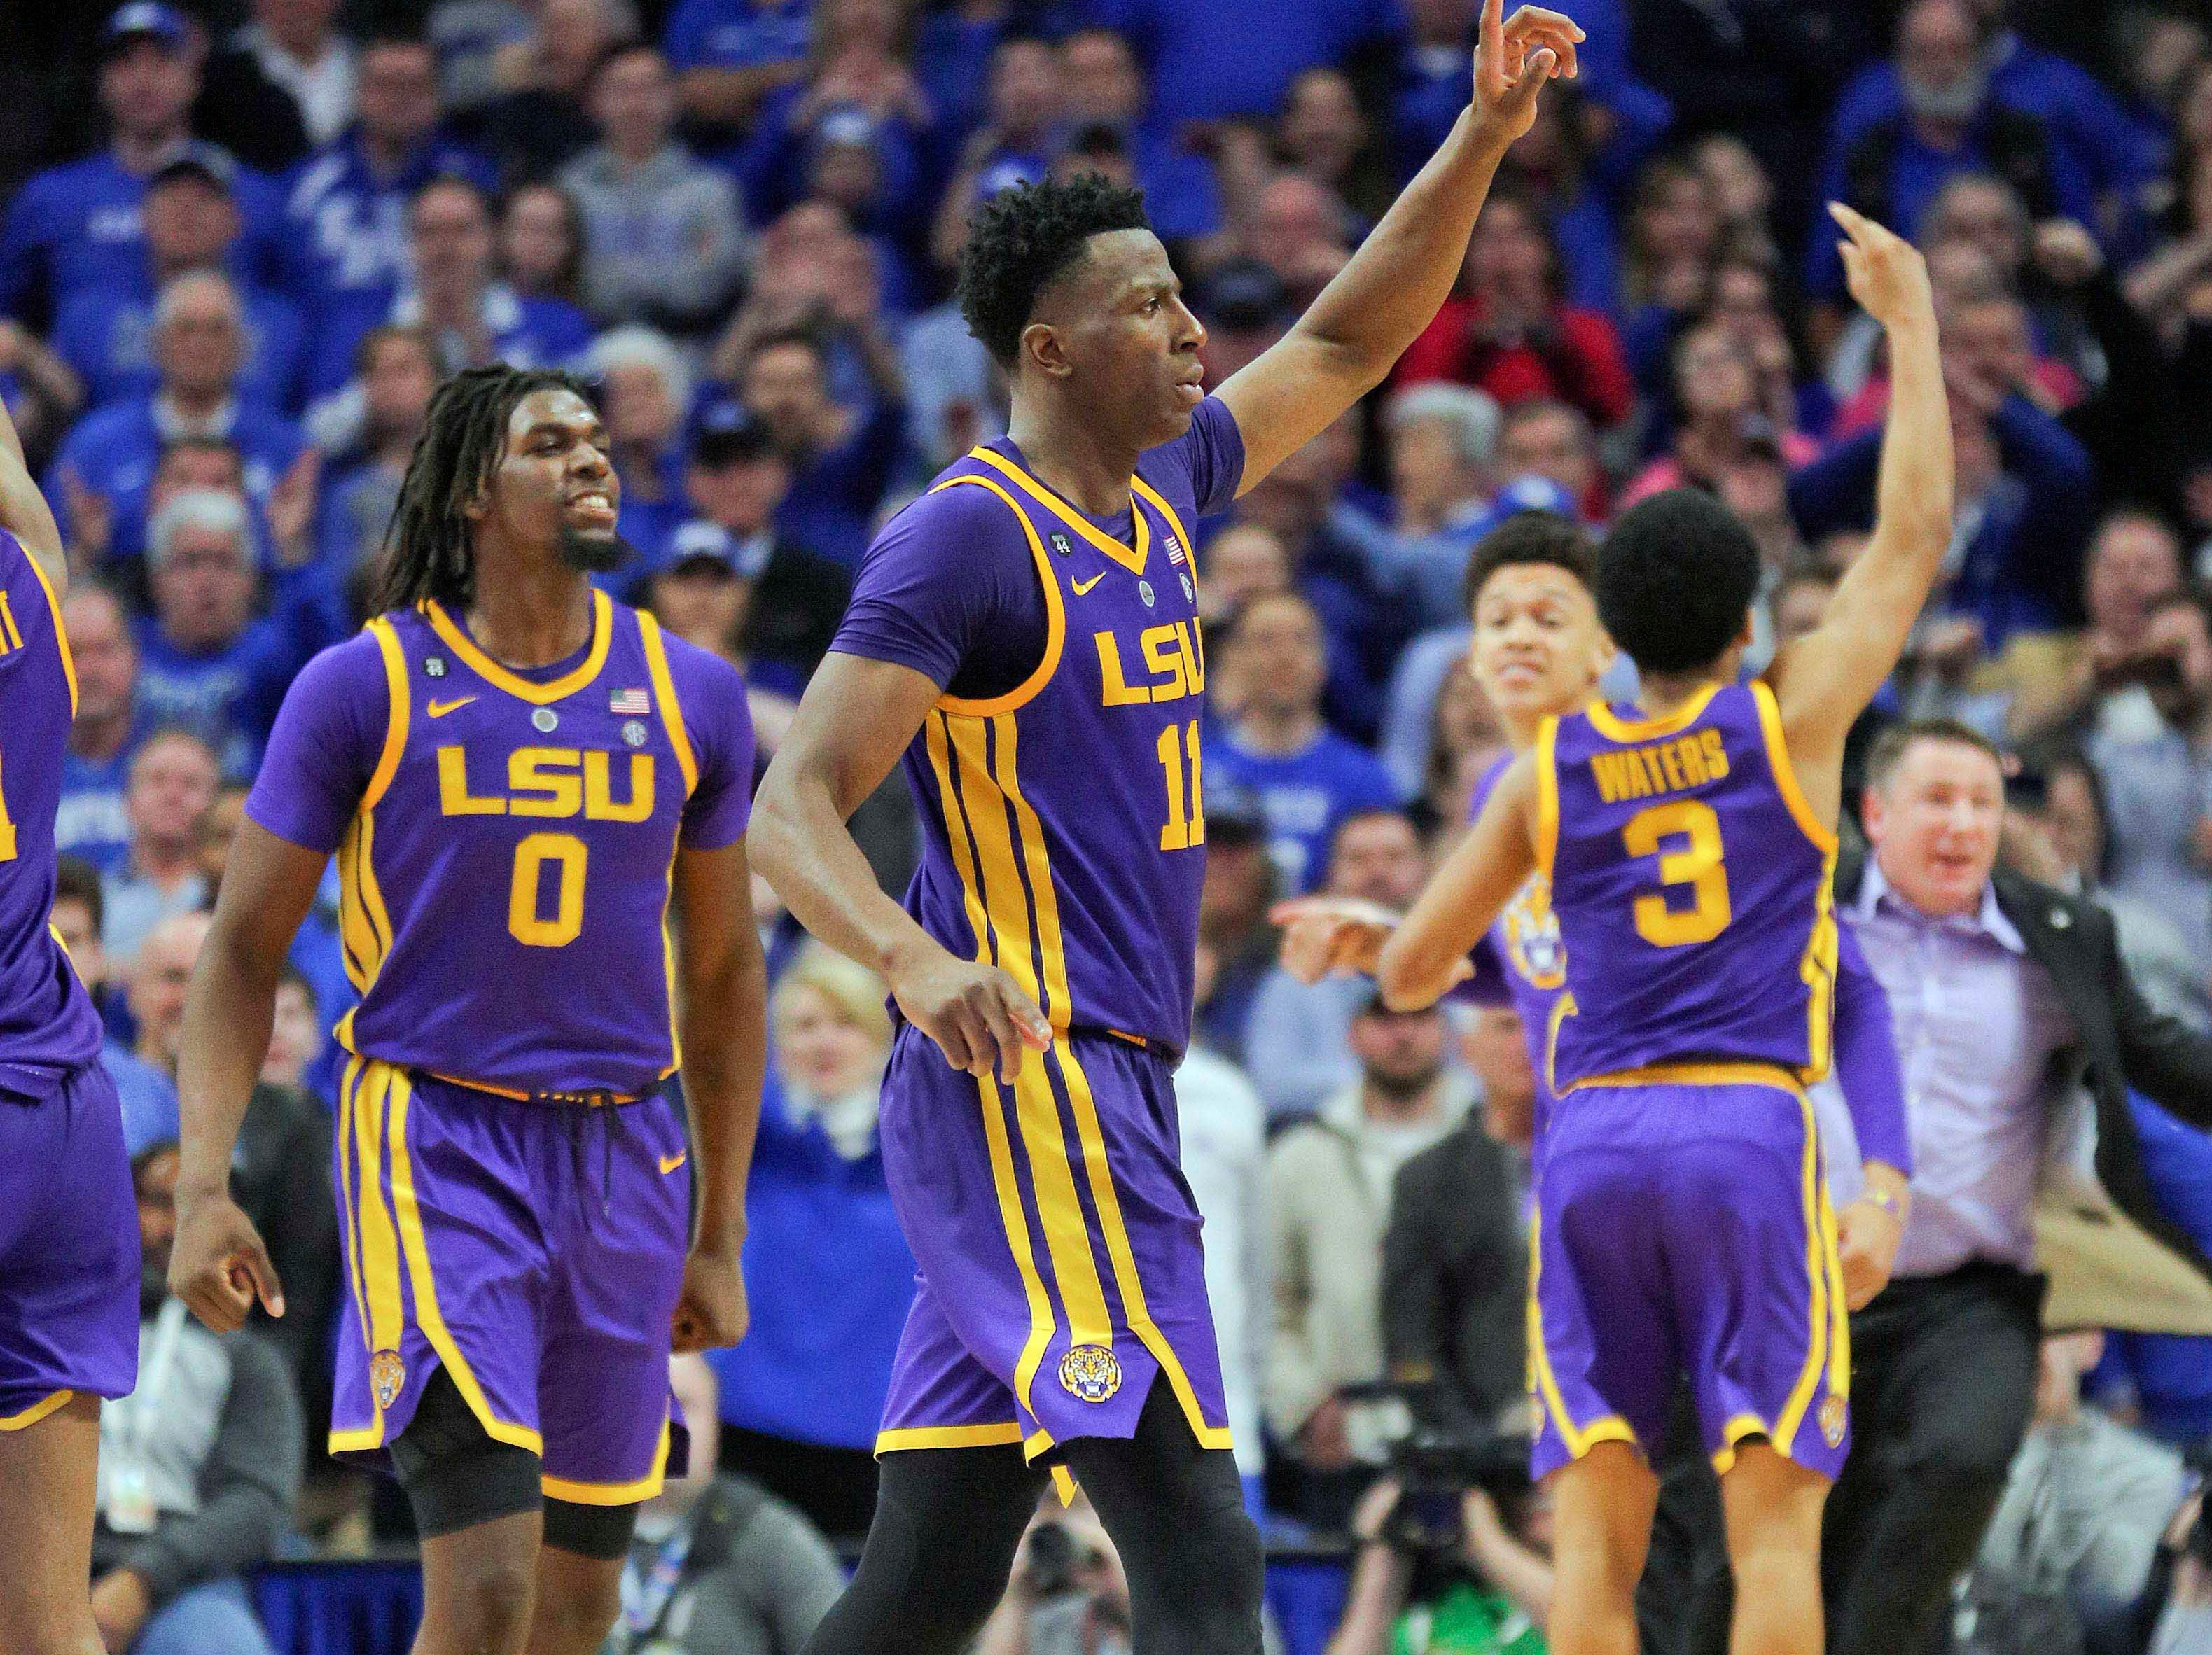 Feb 12, 2019; Lexington, KY, USA; LSU Tigers players celebrate after hitting the game winning shot against the Kentucky Wildcats in the second half at Rupp Arena. Mandatory Credit: Mark Zerof-USA TODAY Sports